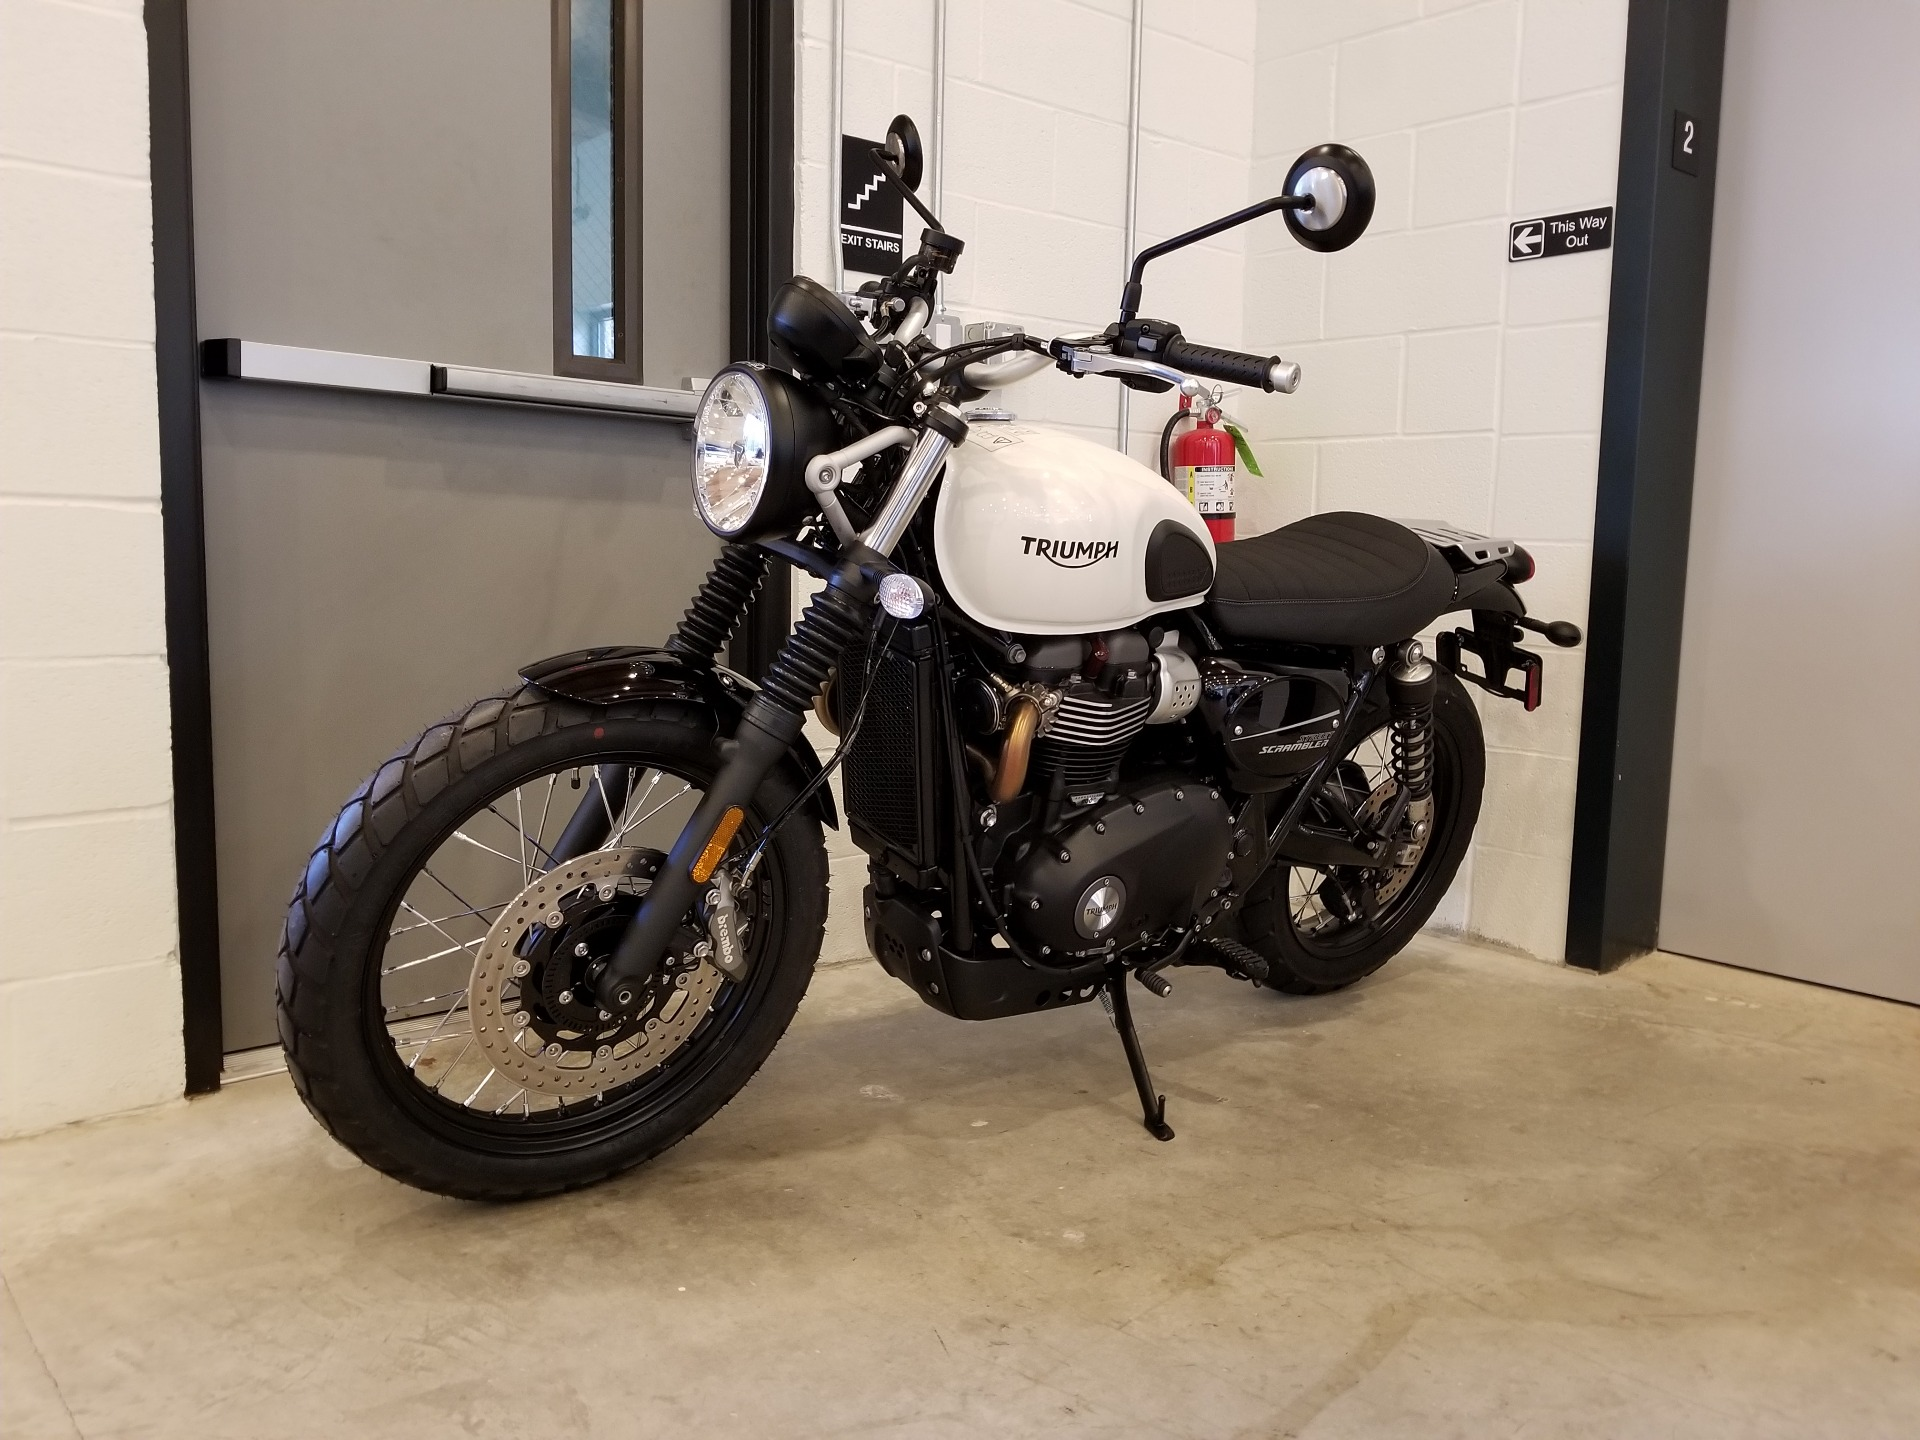 2019 Triumph Street Scrambler 900 in Port Clinton, Pennsylvania - Photo 5